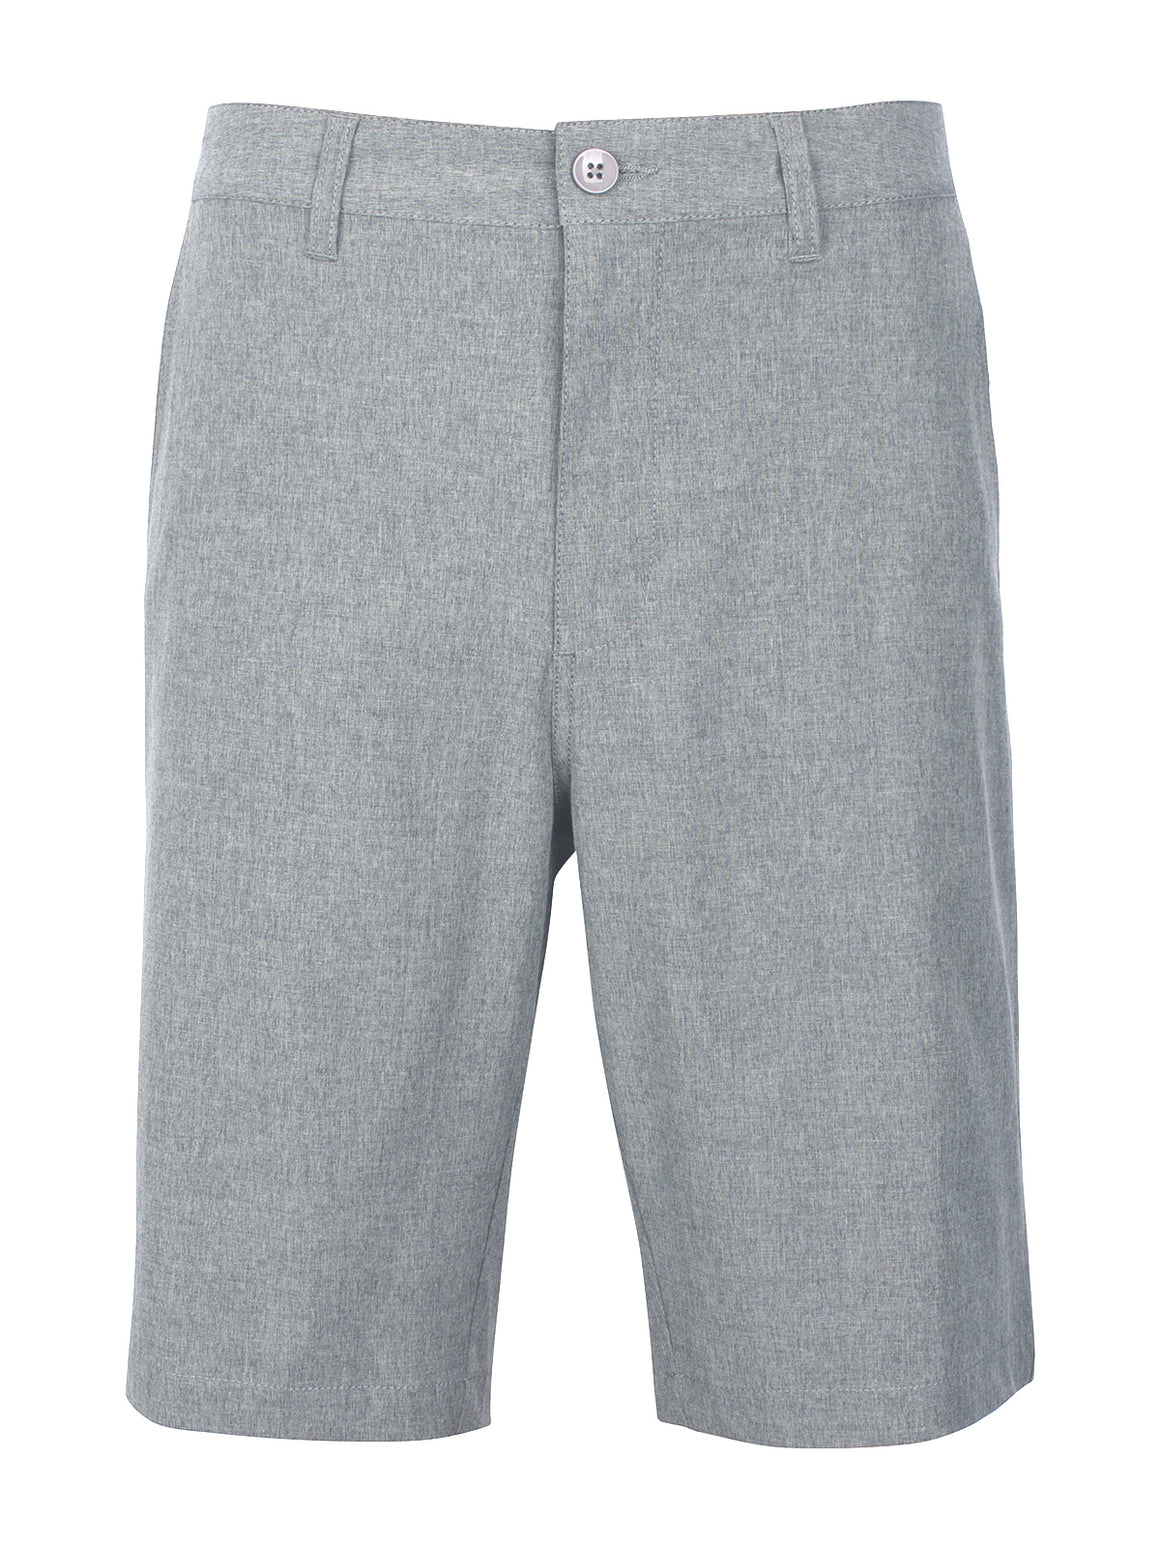 Traveler FIT101 Short - Opal Grey